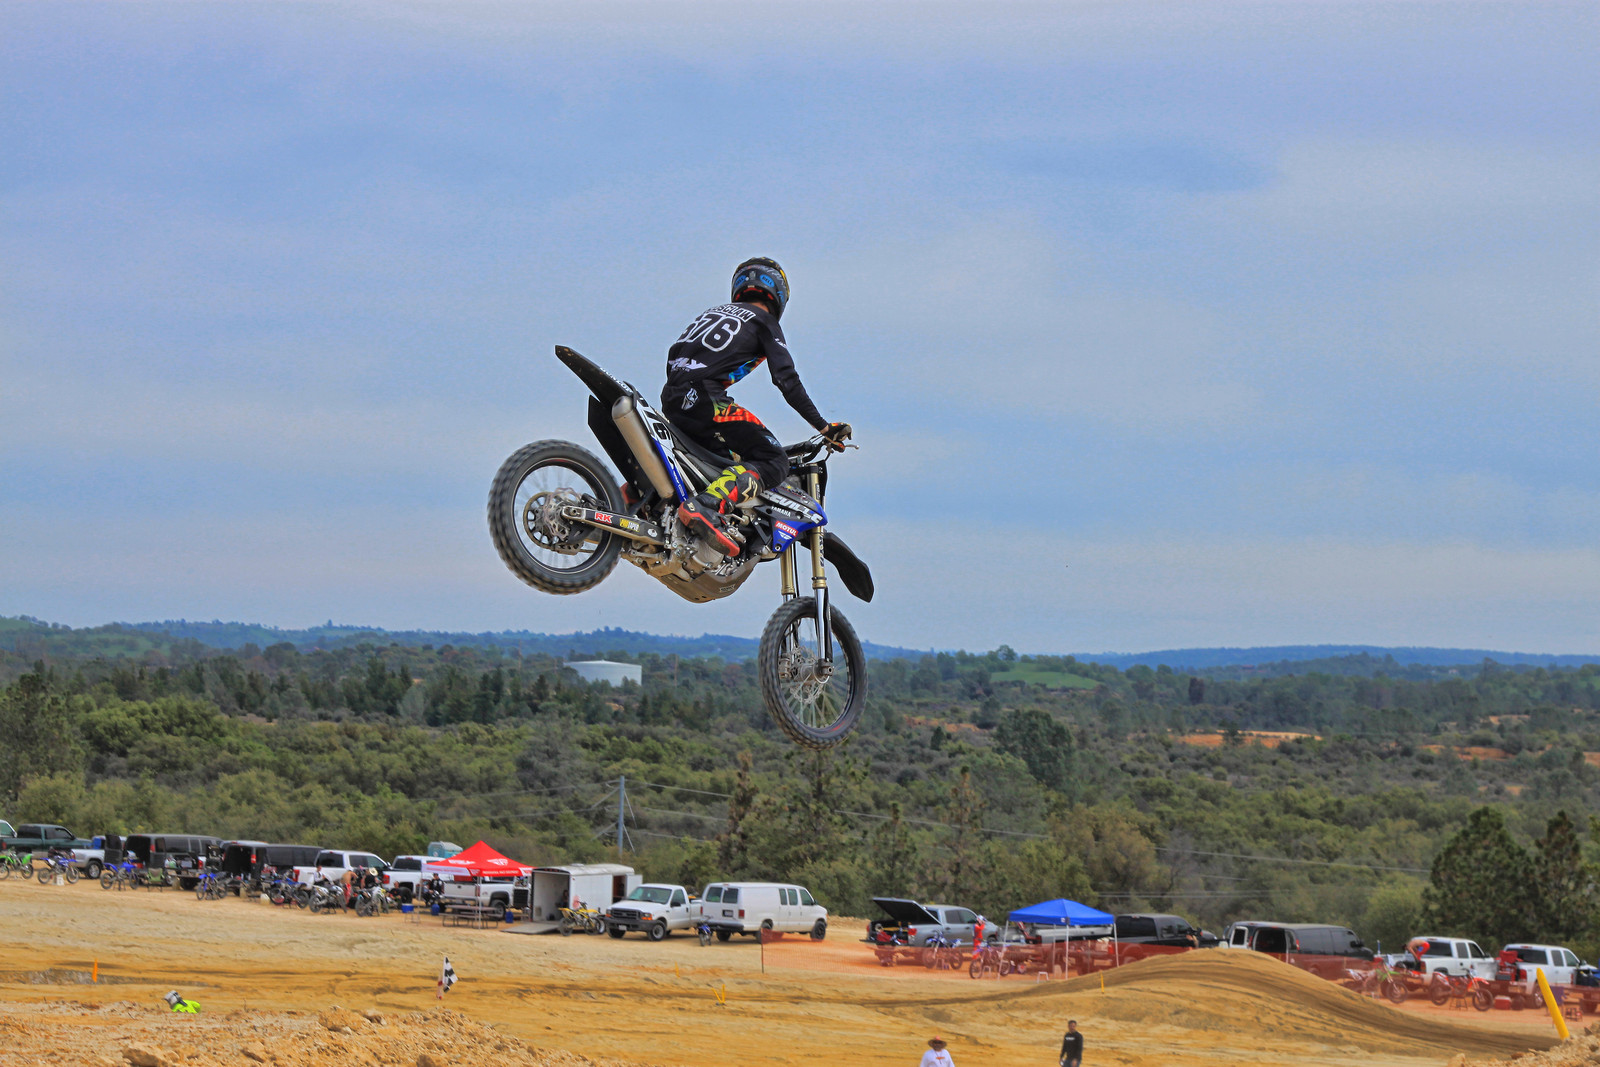 Ione Sands MX dropping back down to the sand - Harvdog21 - Motocross Pictures - Vital MX